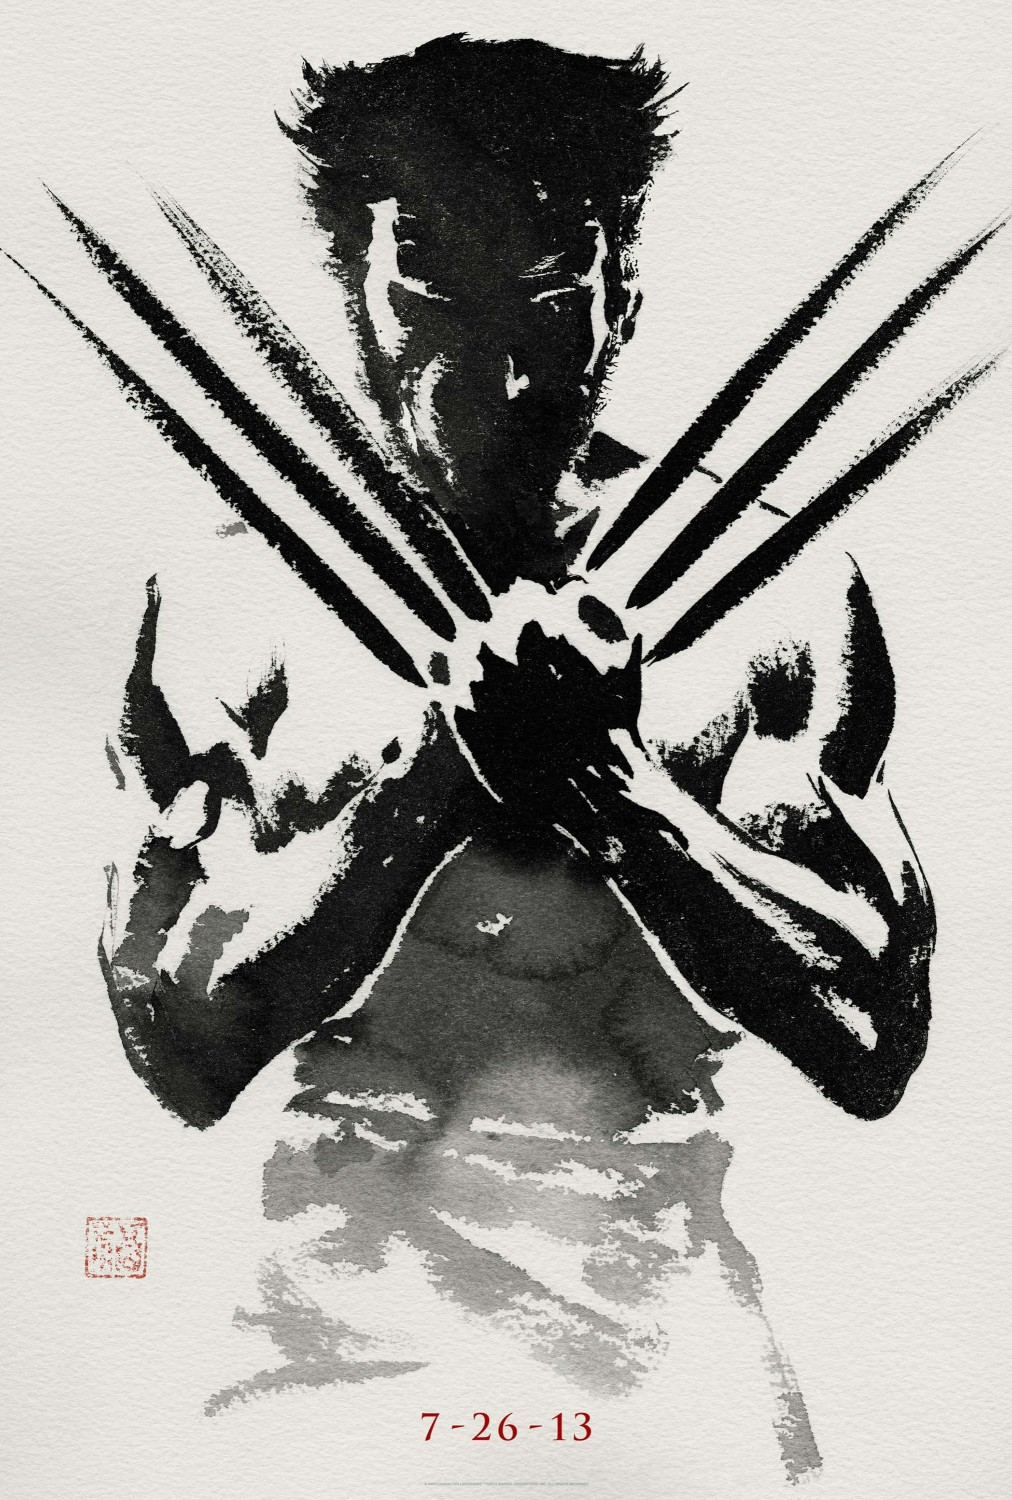 Extra Large Movie Poster Image for The Wolverine